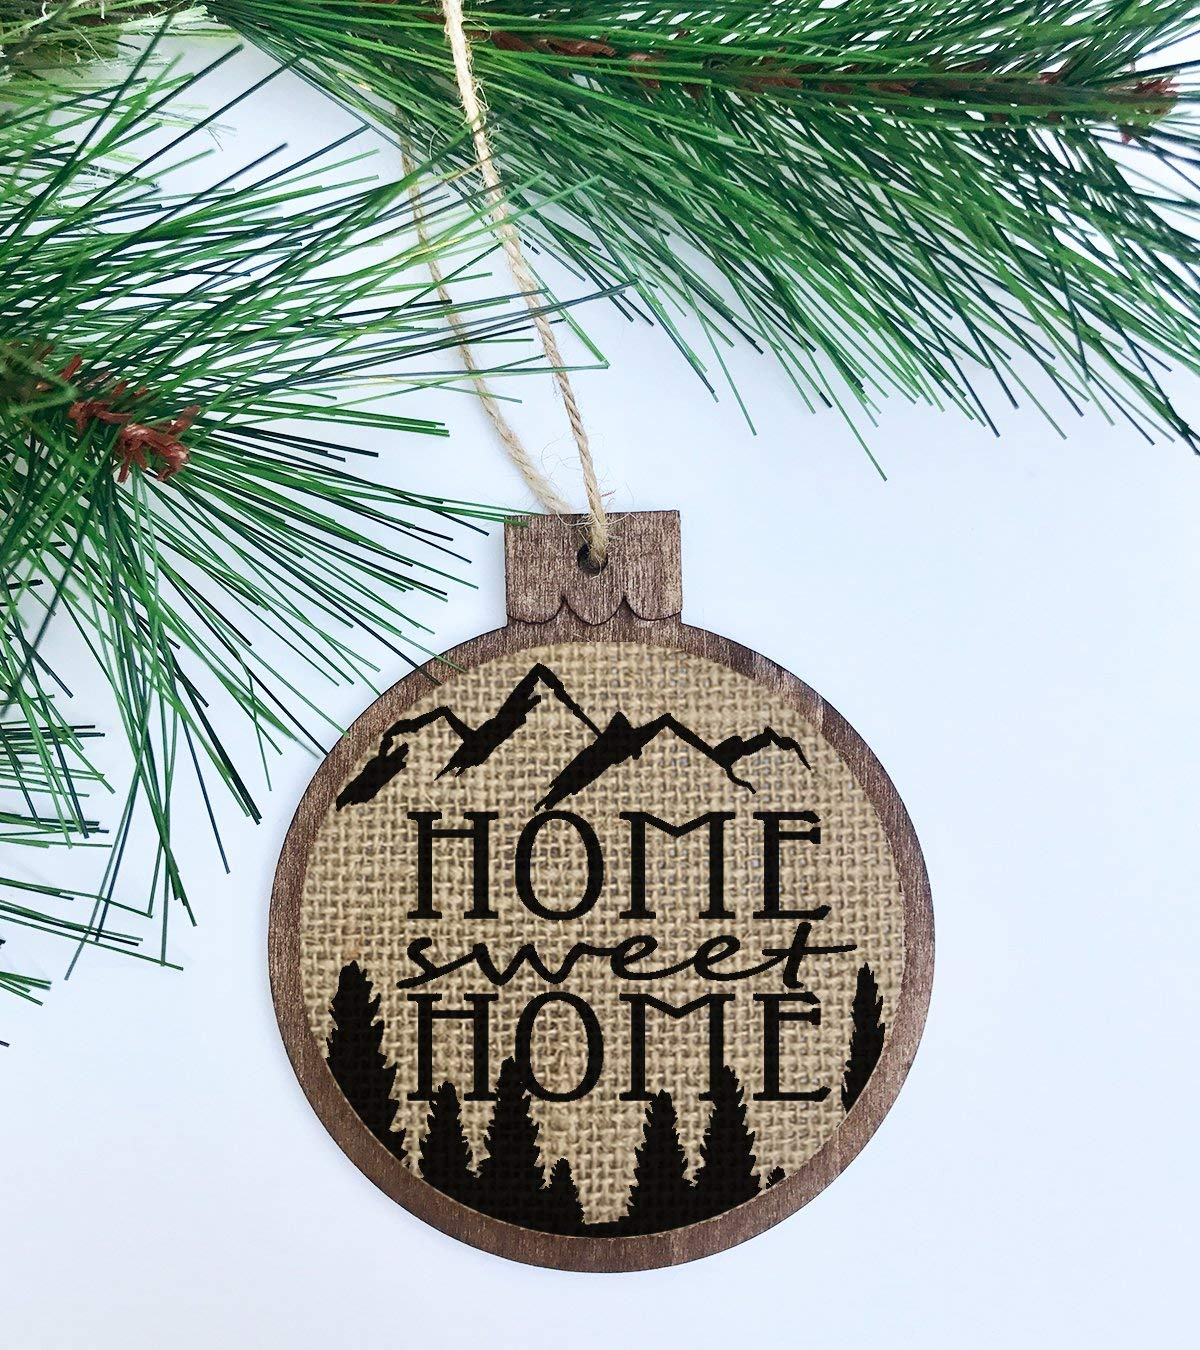 Home Sweet Home / Rustic Christmas Ornament / Wood Burlap / Christmas Shabby Chic Decor / Country Mountains Trees